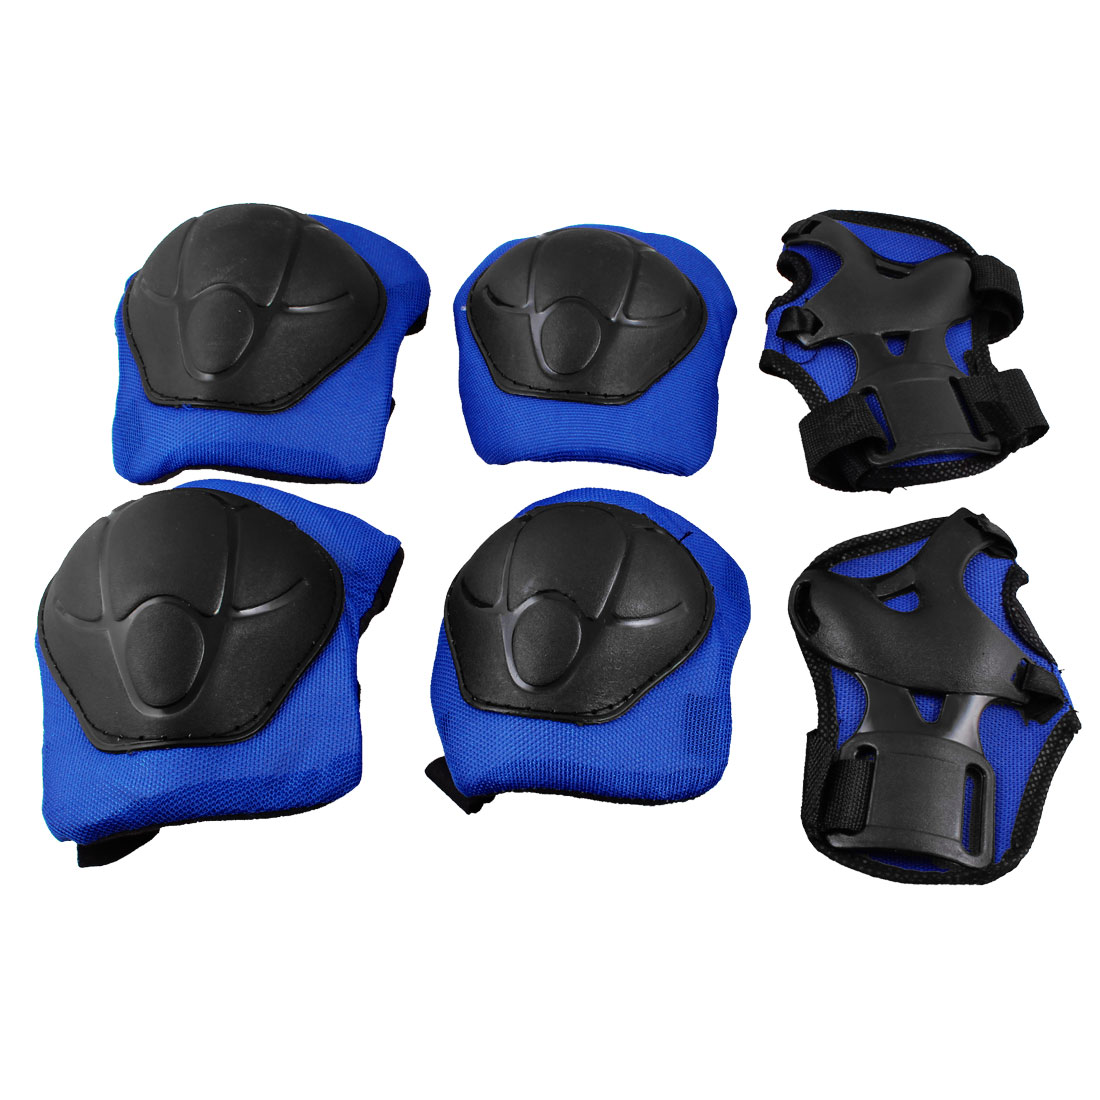 Children Skating Skateboarding Safety Gear Palm Wrist Guard Elbow Knee Pads Set by Unique-Bargains